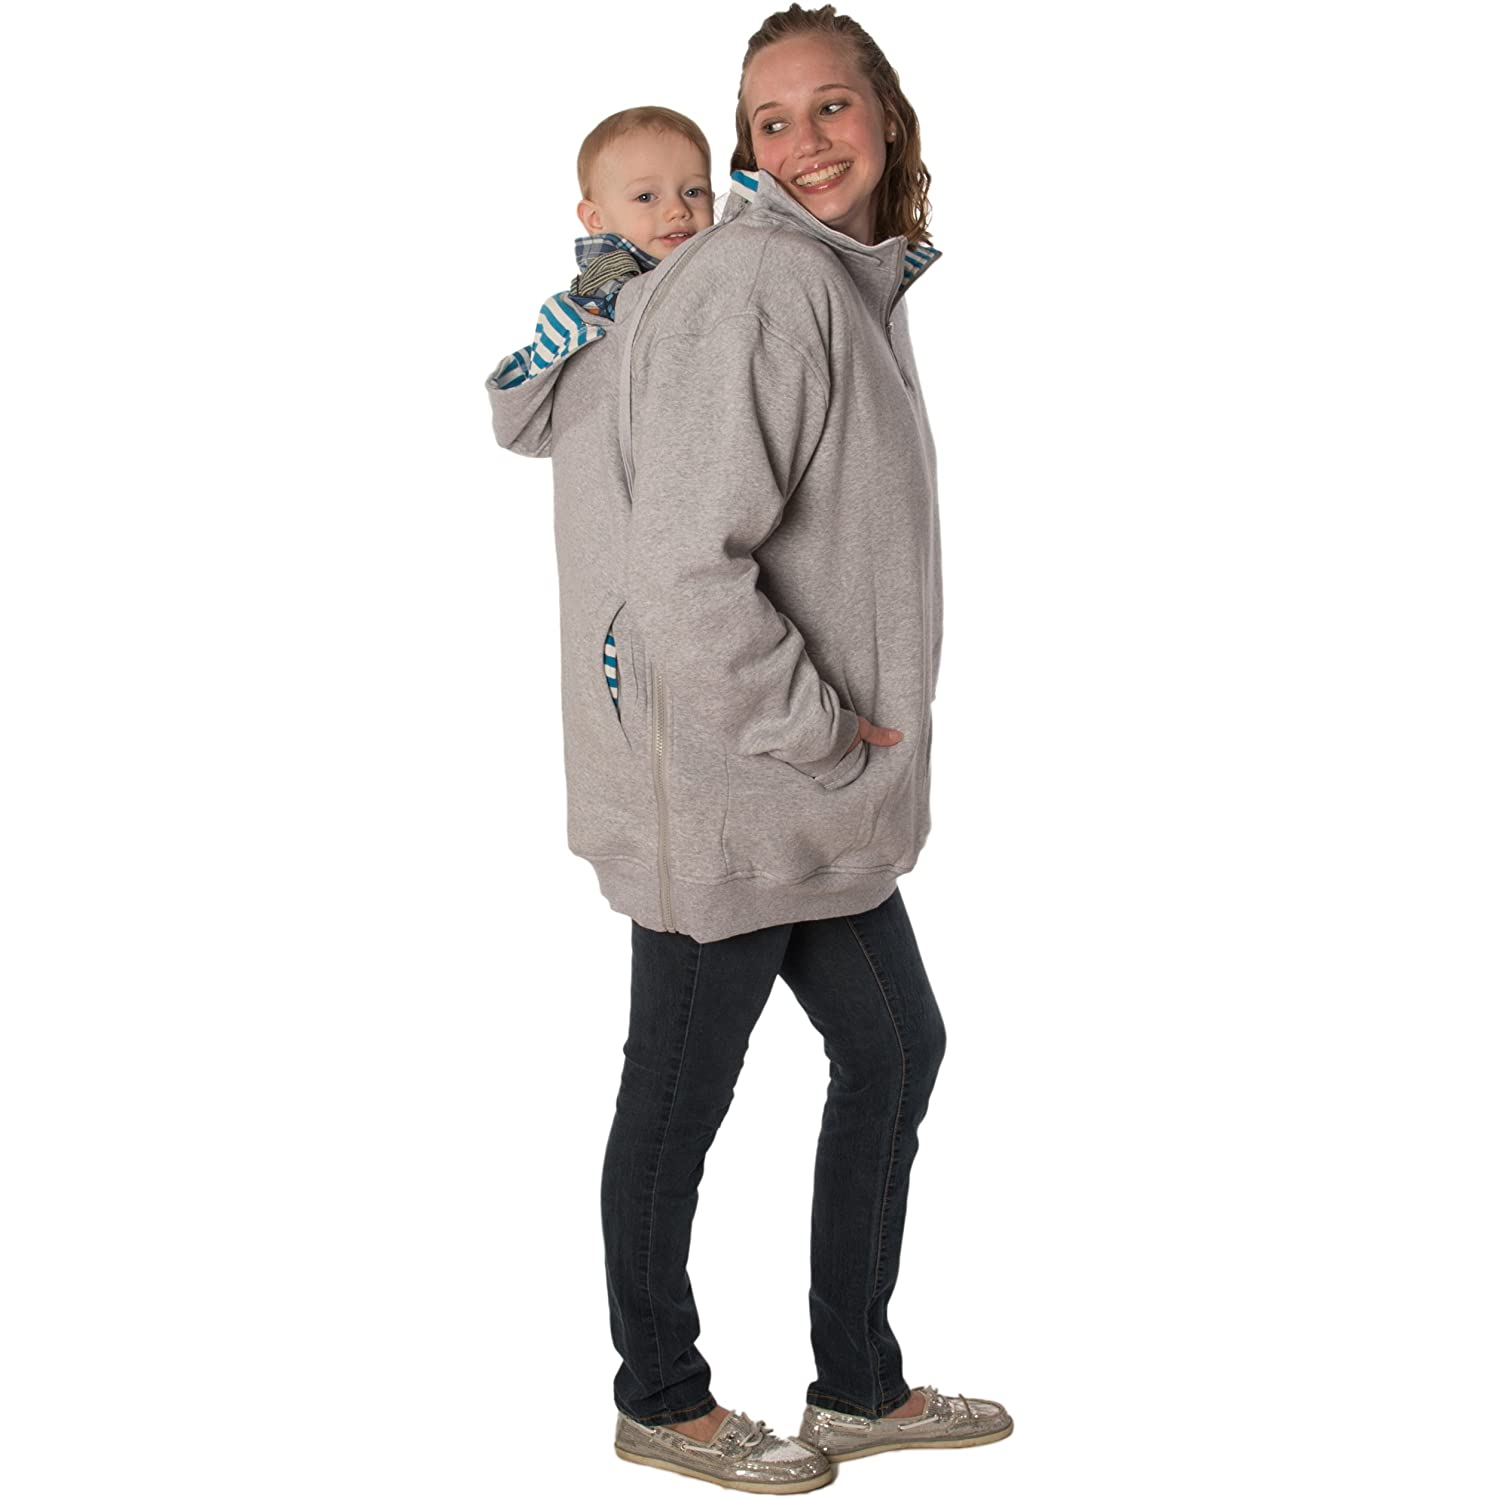 RooCoat Babywearing & Maternity Coat 2.0 Charcoal with Gray Stripes XS